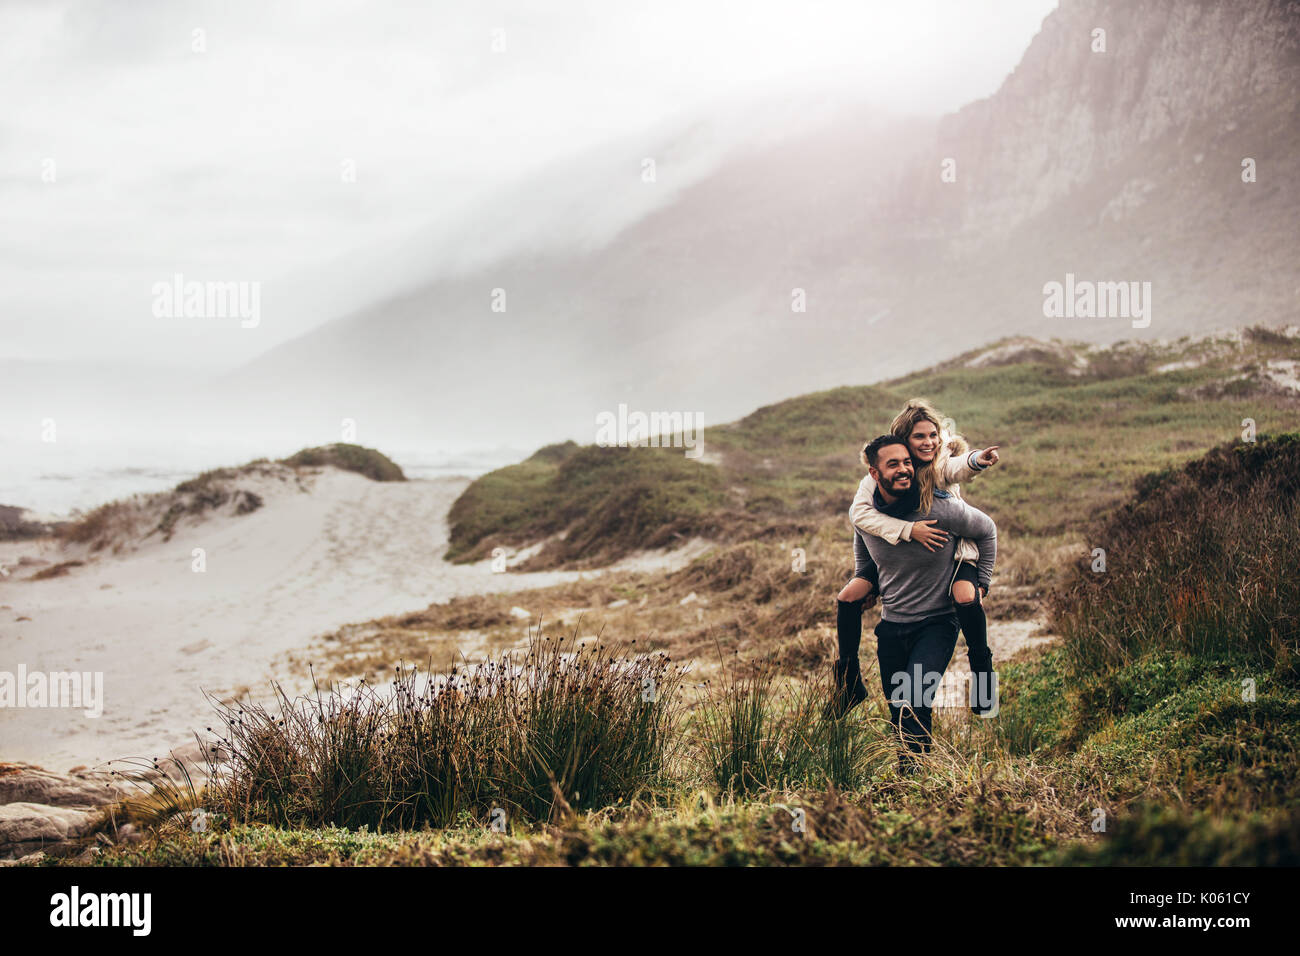 Outdoor shot of man giving woman piggyback on winter beach. Man carrying woman oh his back pointing away. - Stock Image